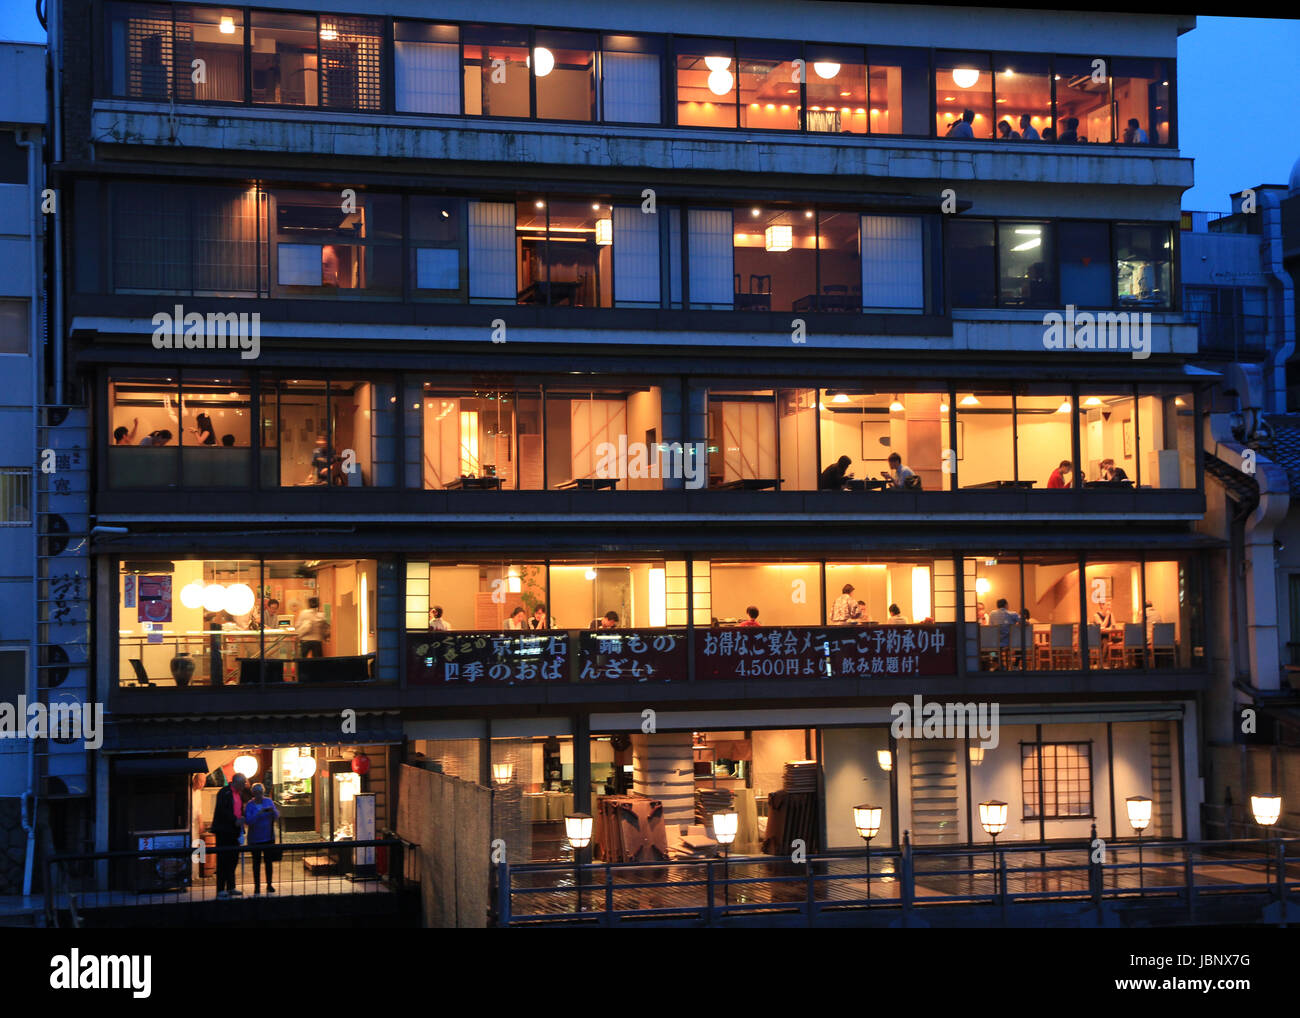 Diners eat in a multi-layered restaurant on the banks of The Kamo River (Kamo-gawa), Kyoto, Japan - Stock Image